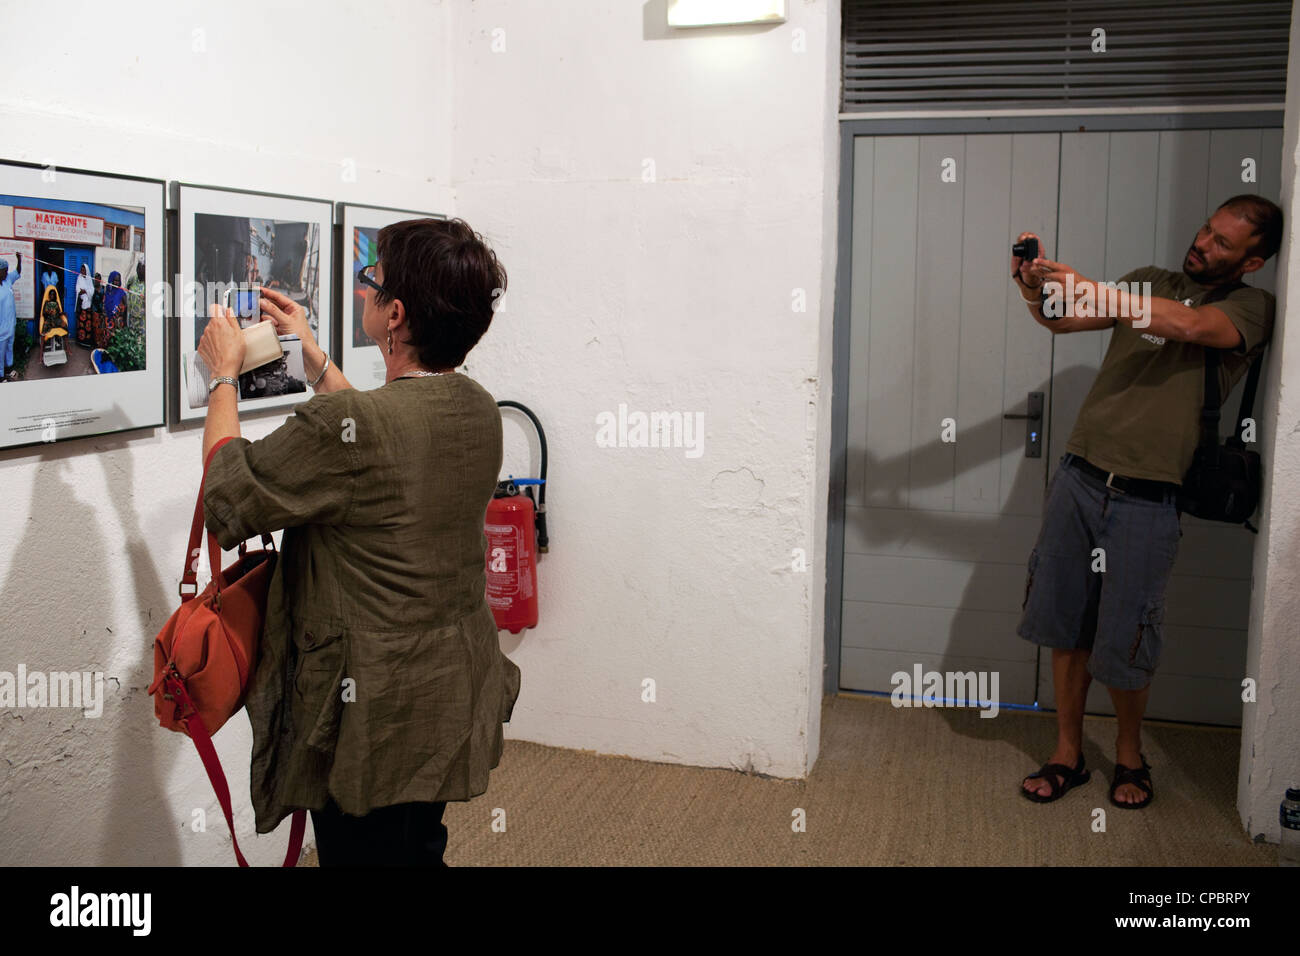 Visitors at one of the exhibitions of Visa Pour l'Image 2011 photography festival, Perpignan, France - Stock Image